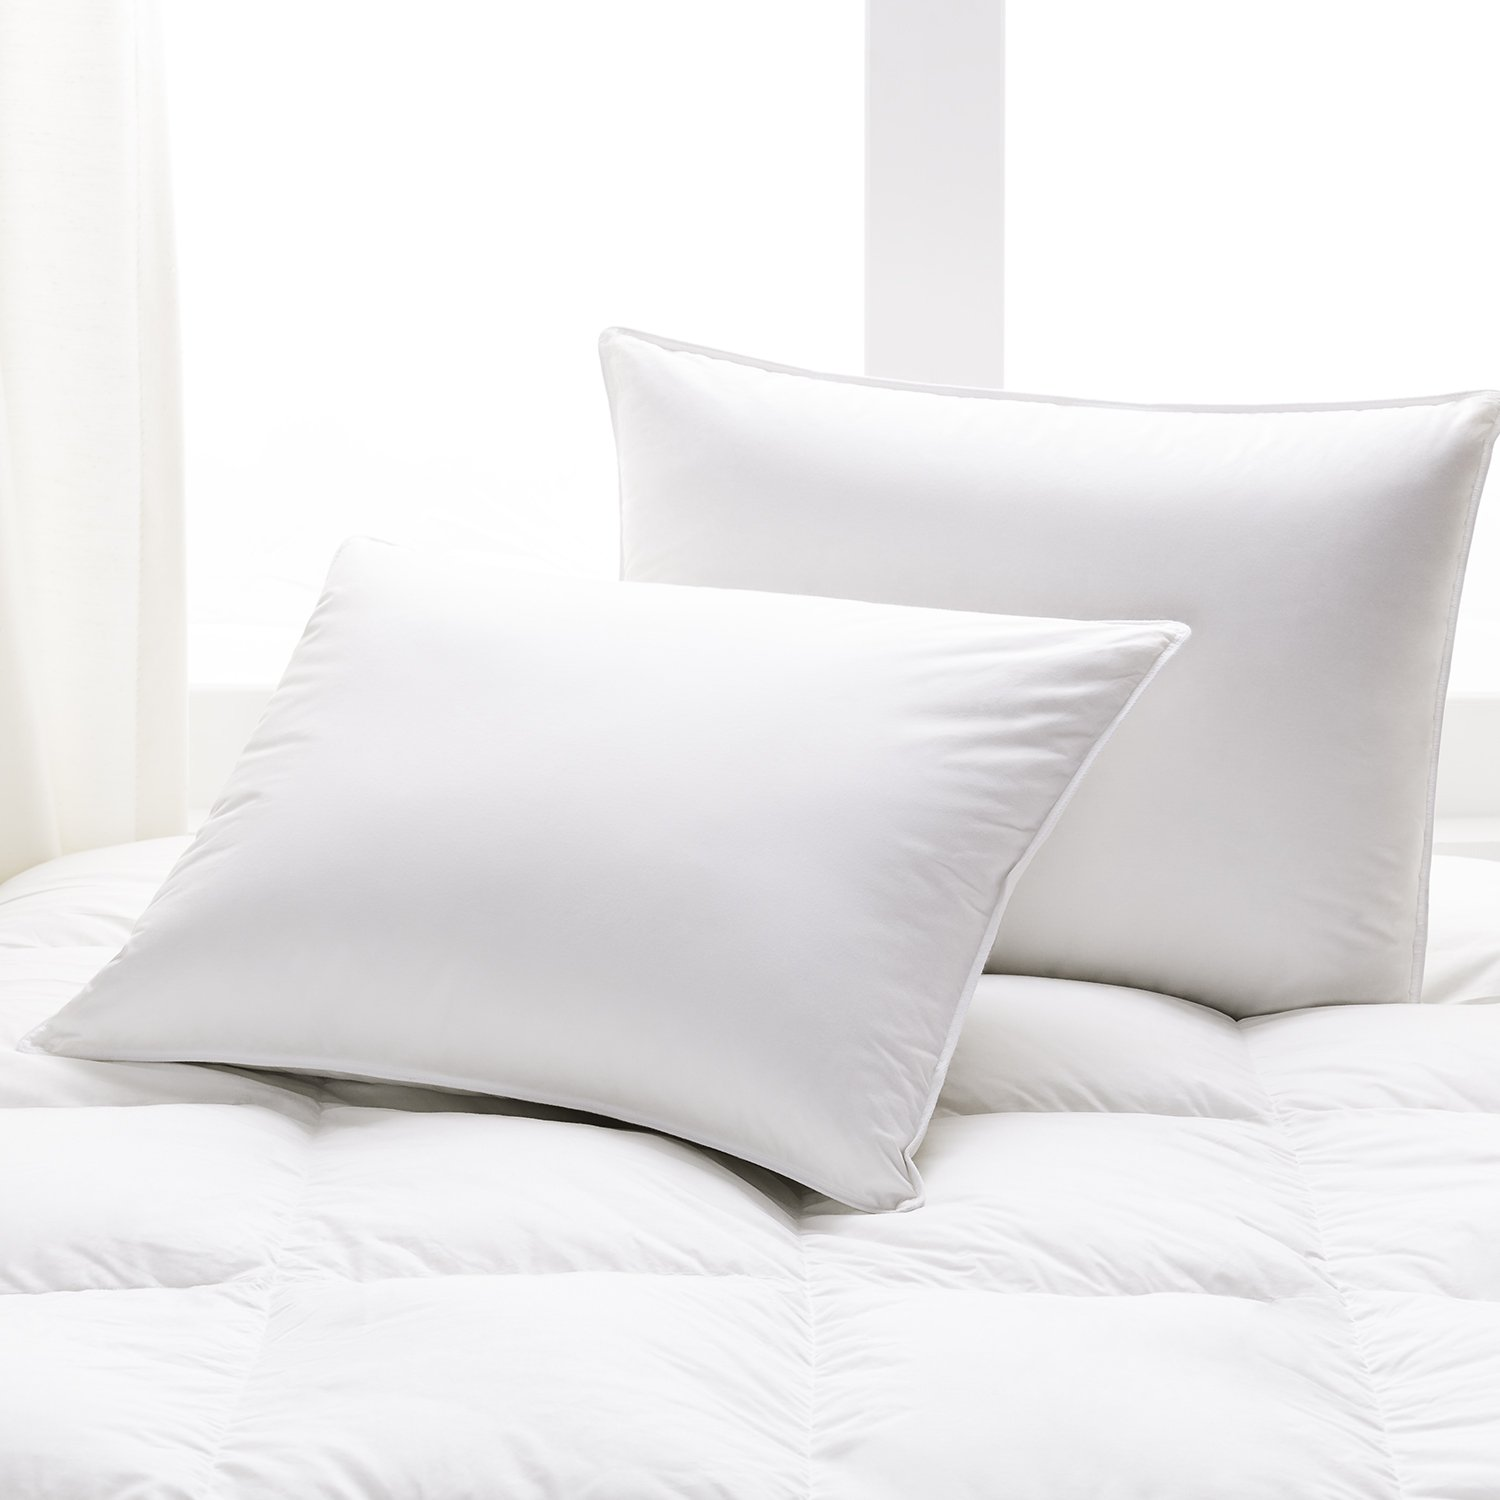 Beckham Hotel Collection White Down Pillow 2-Pack with Long-Staple Cotton Shell - Filled in the USA with RDS Certified, Responsibly Sourced Down - Hypoallergenic - 550 Fill Power - Standard